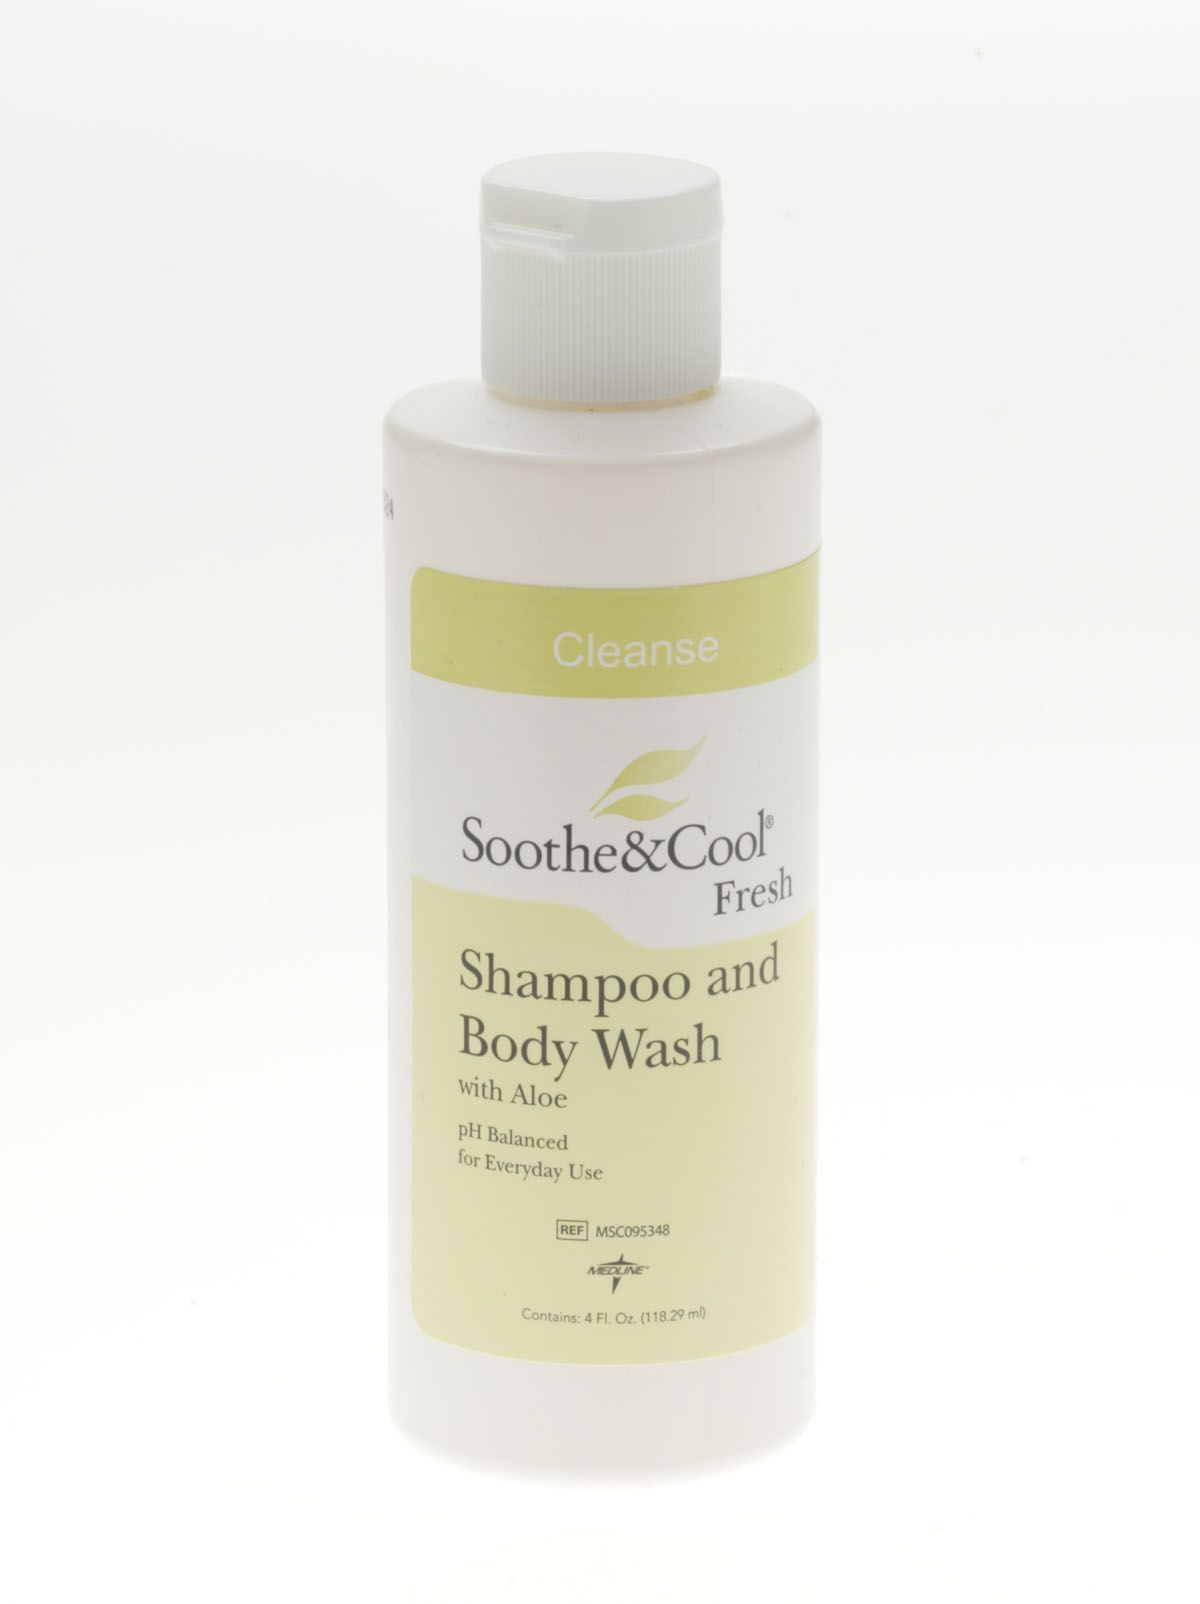 Medline Soothe & Cool Shampoo & Body Wash - 4 Oz, Box of 48 - Model MSC095348